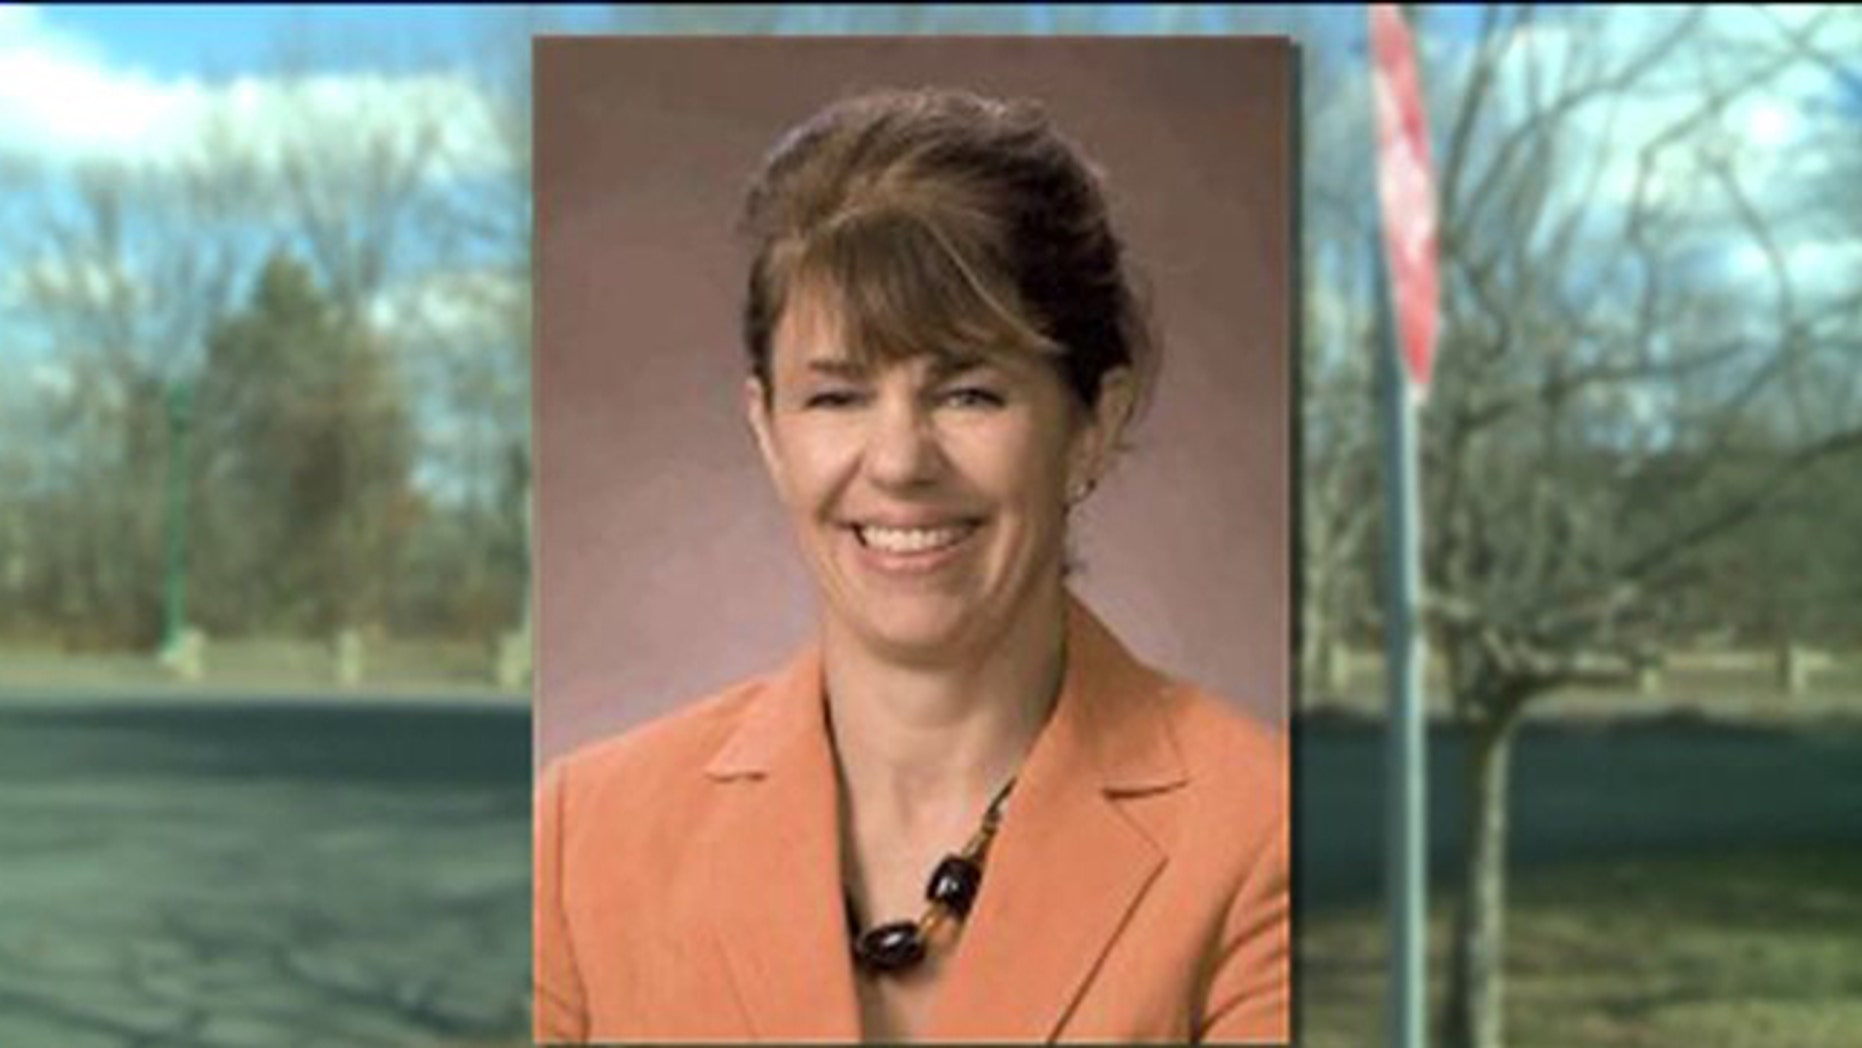 This undated photo, obtained by Fox affiliate WTIC, shows 54-year-old Melissa Millan.